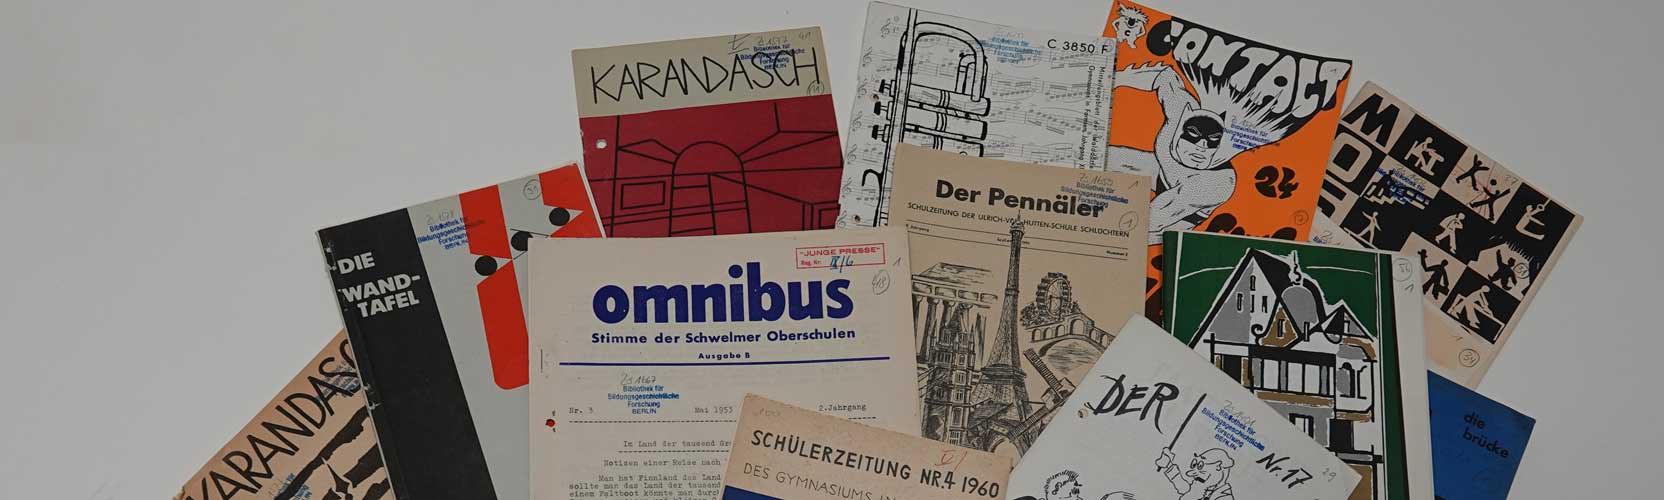 Covers of student journals